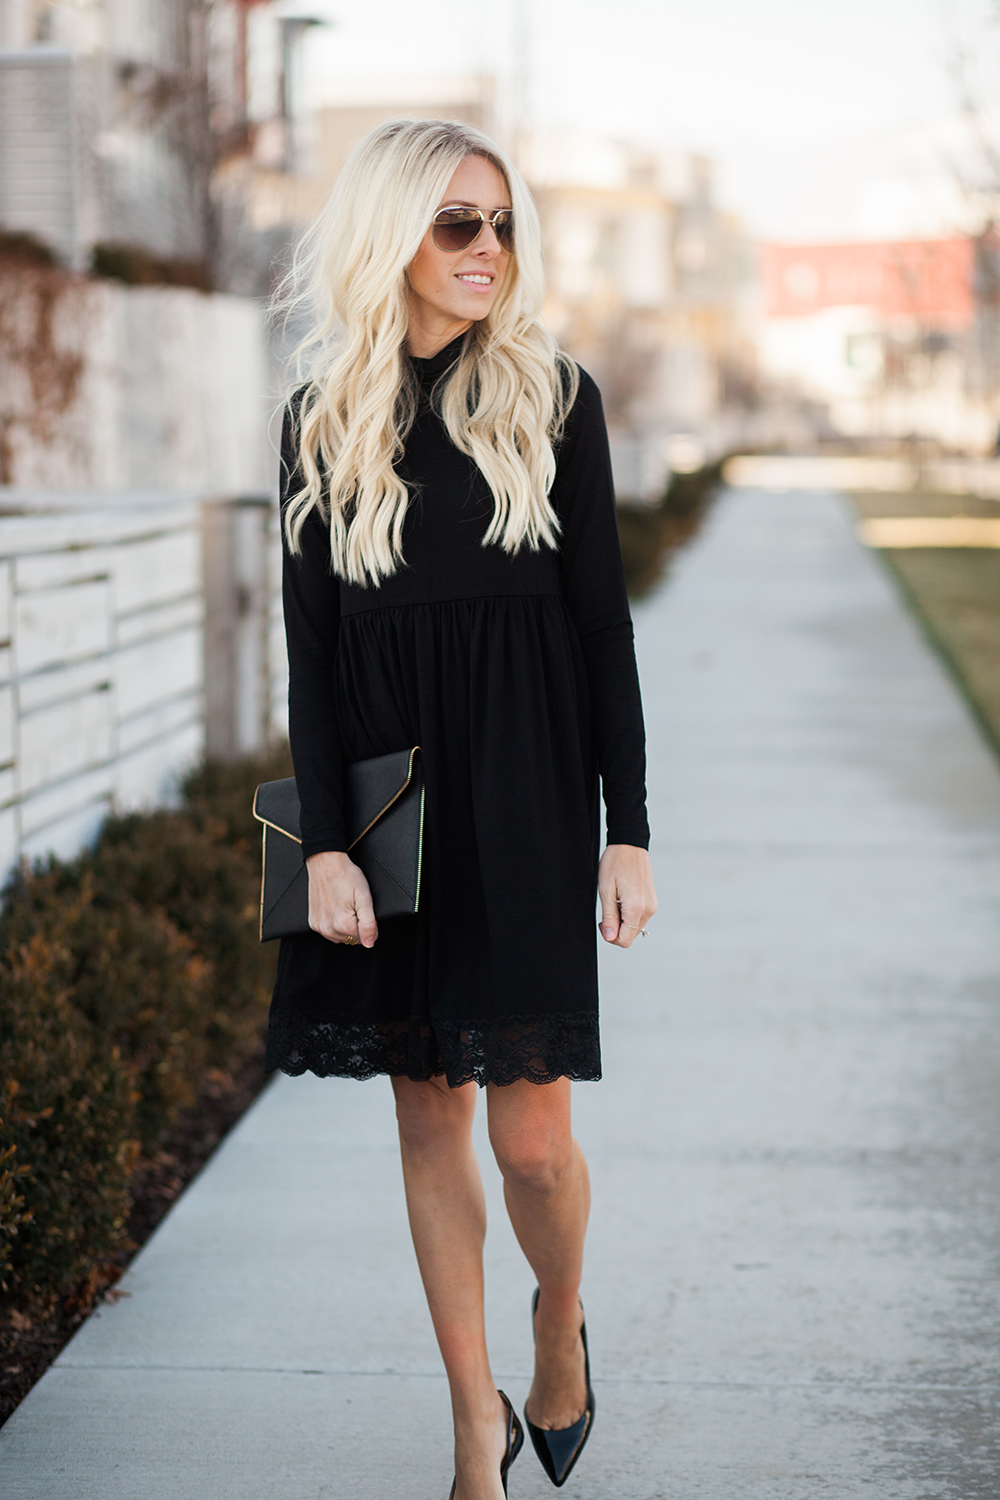 Kailee-Wright-Holiday-black-dress-17-10